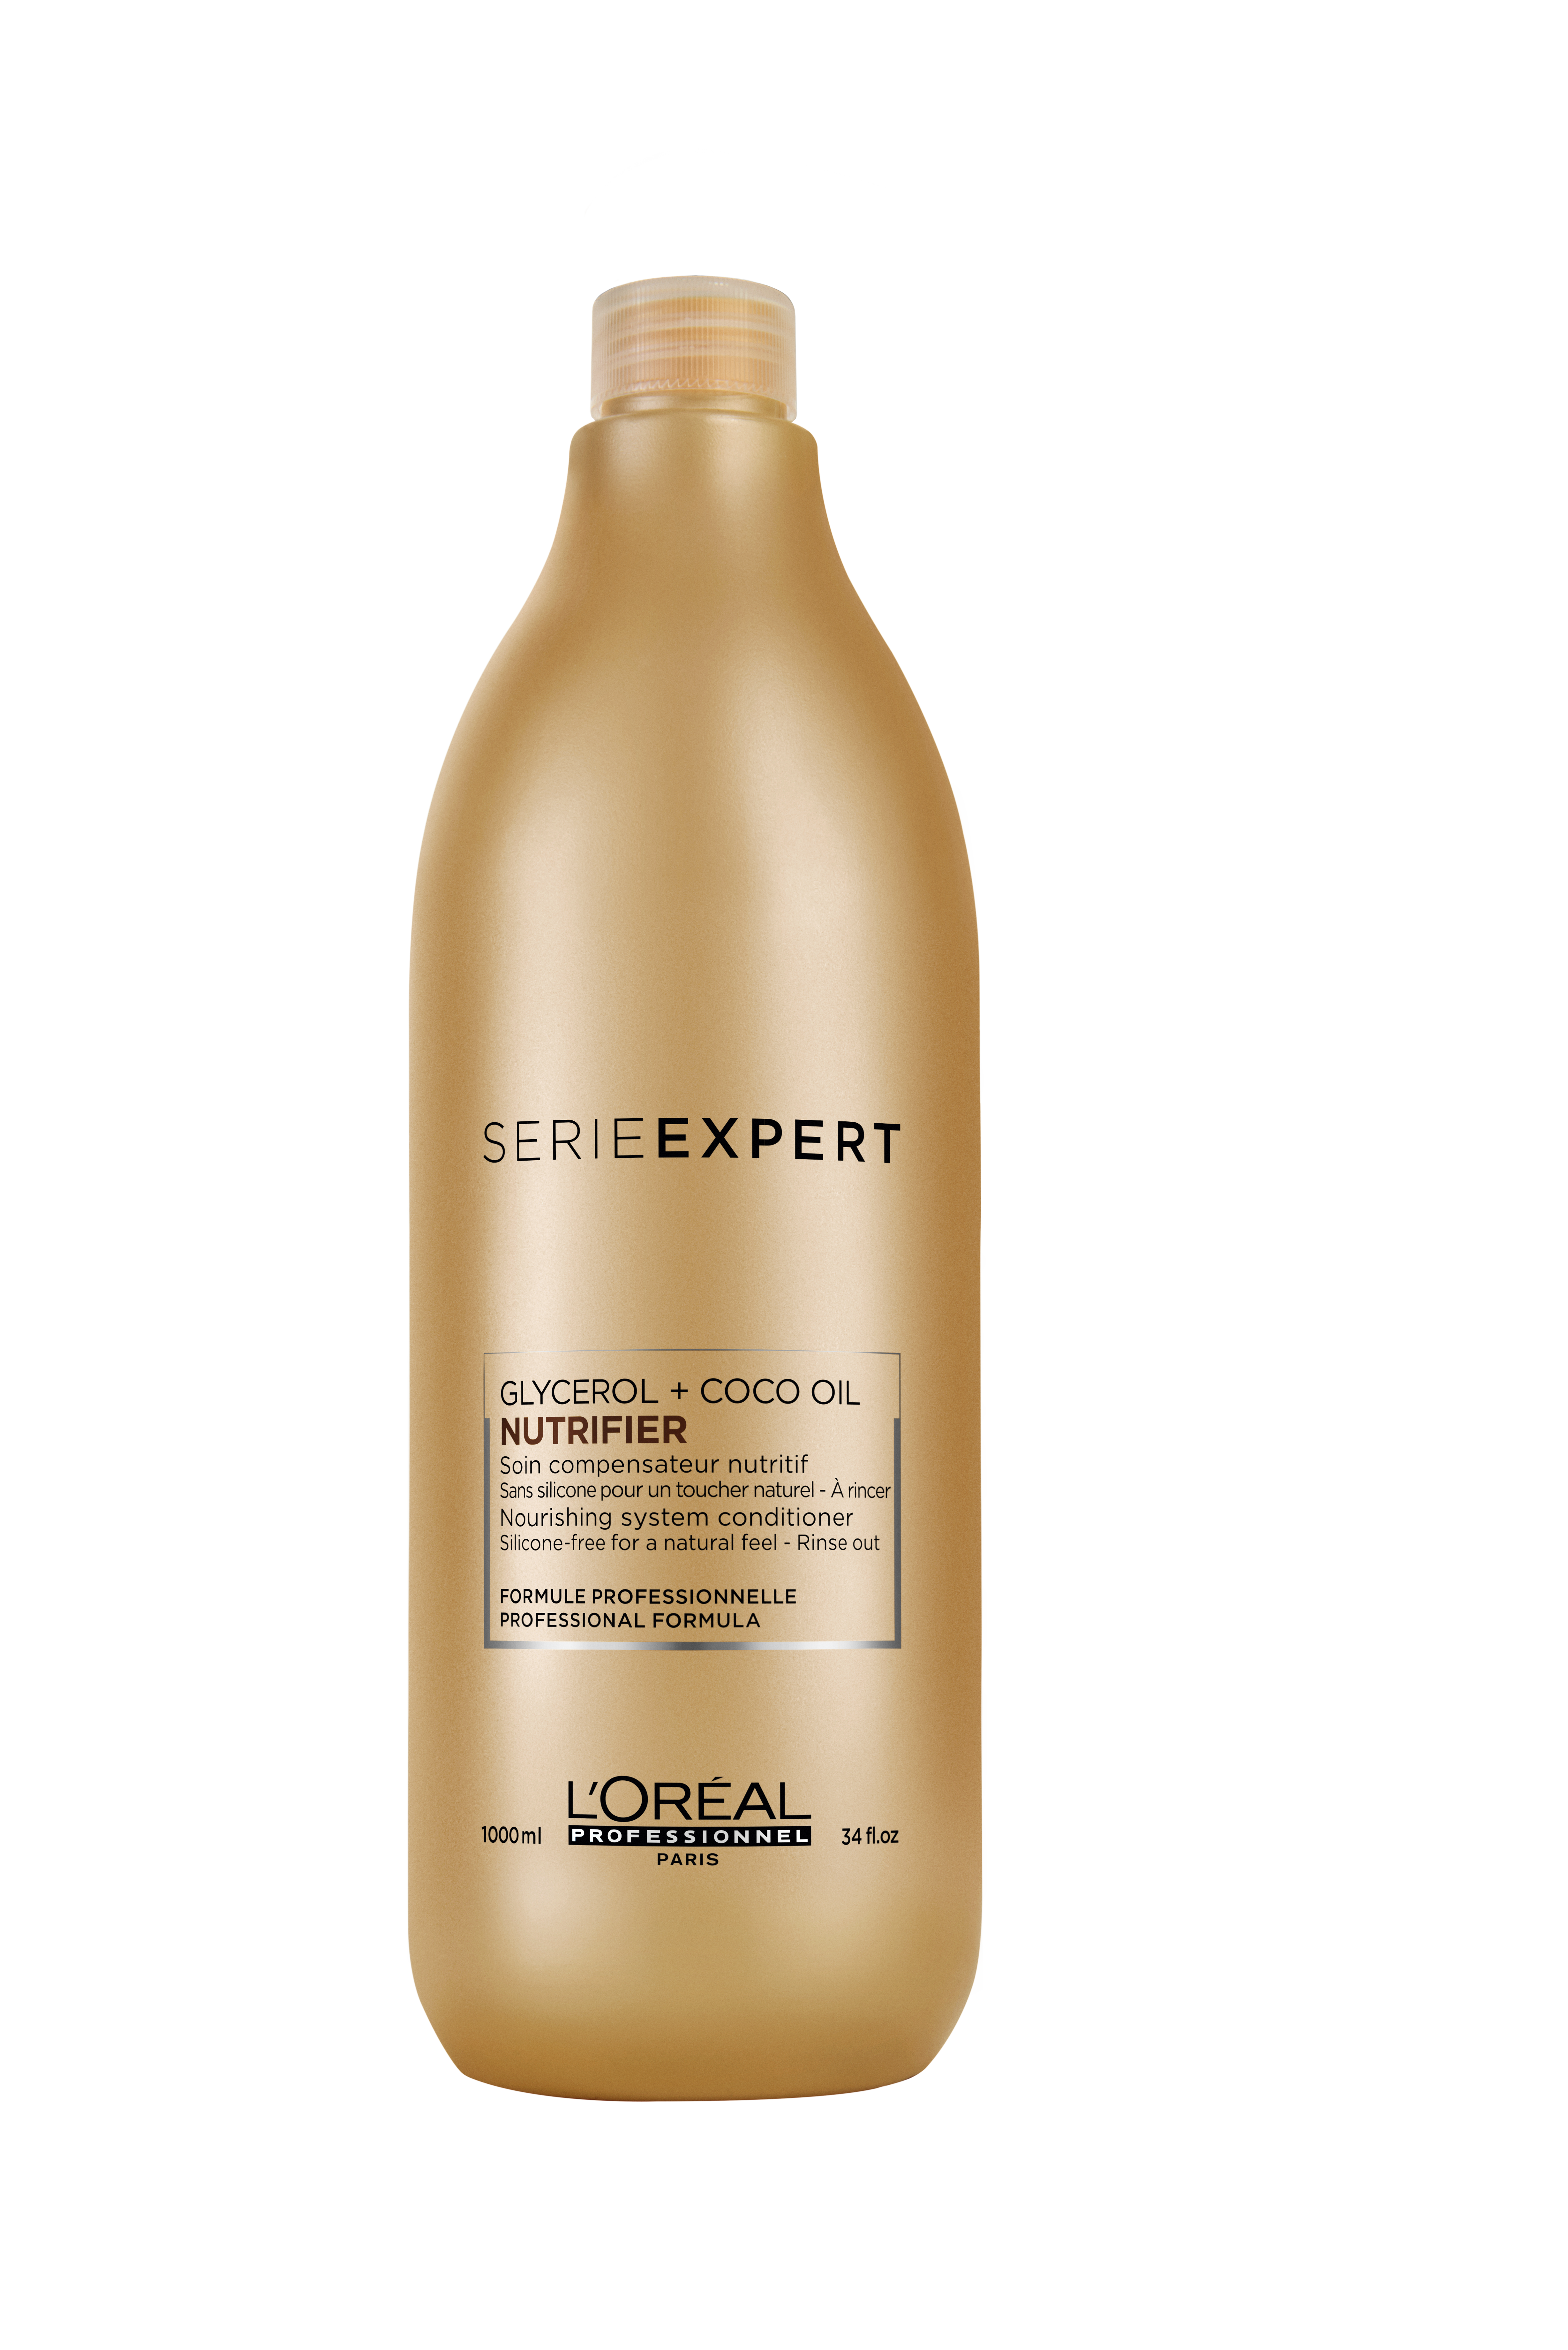 L'Oreal Serie Expert Nutrifier Glycerol+Coco Oil Conditioner 1000ml